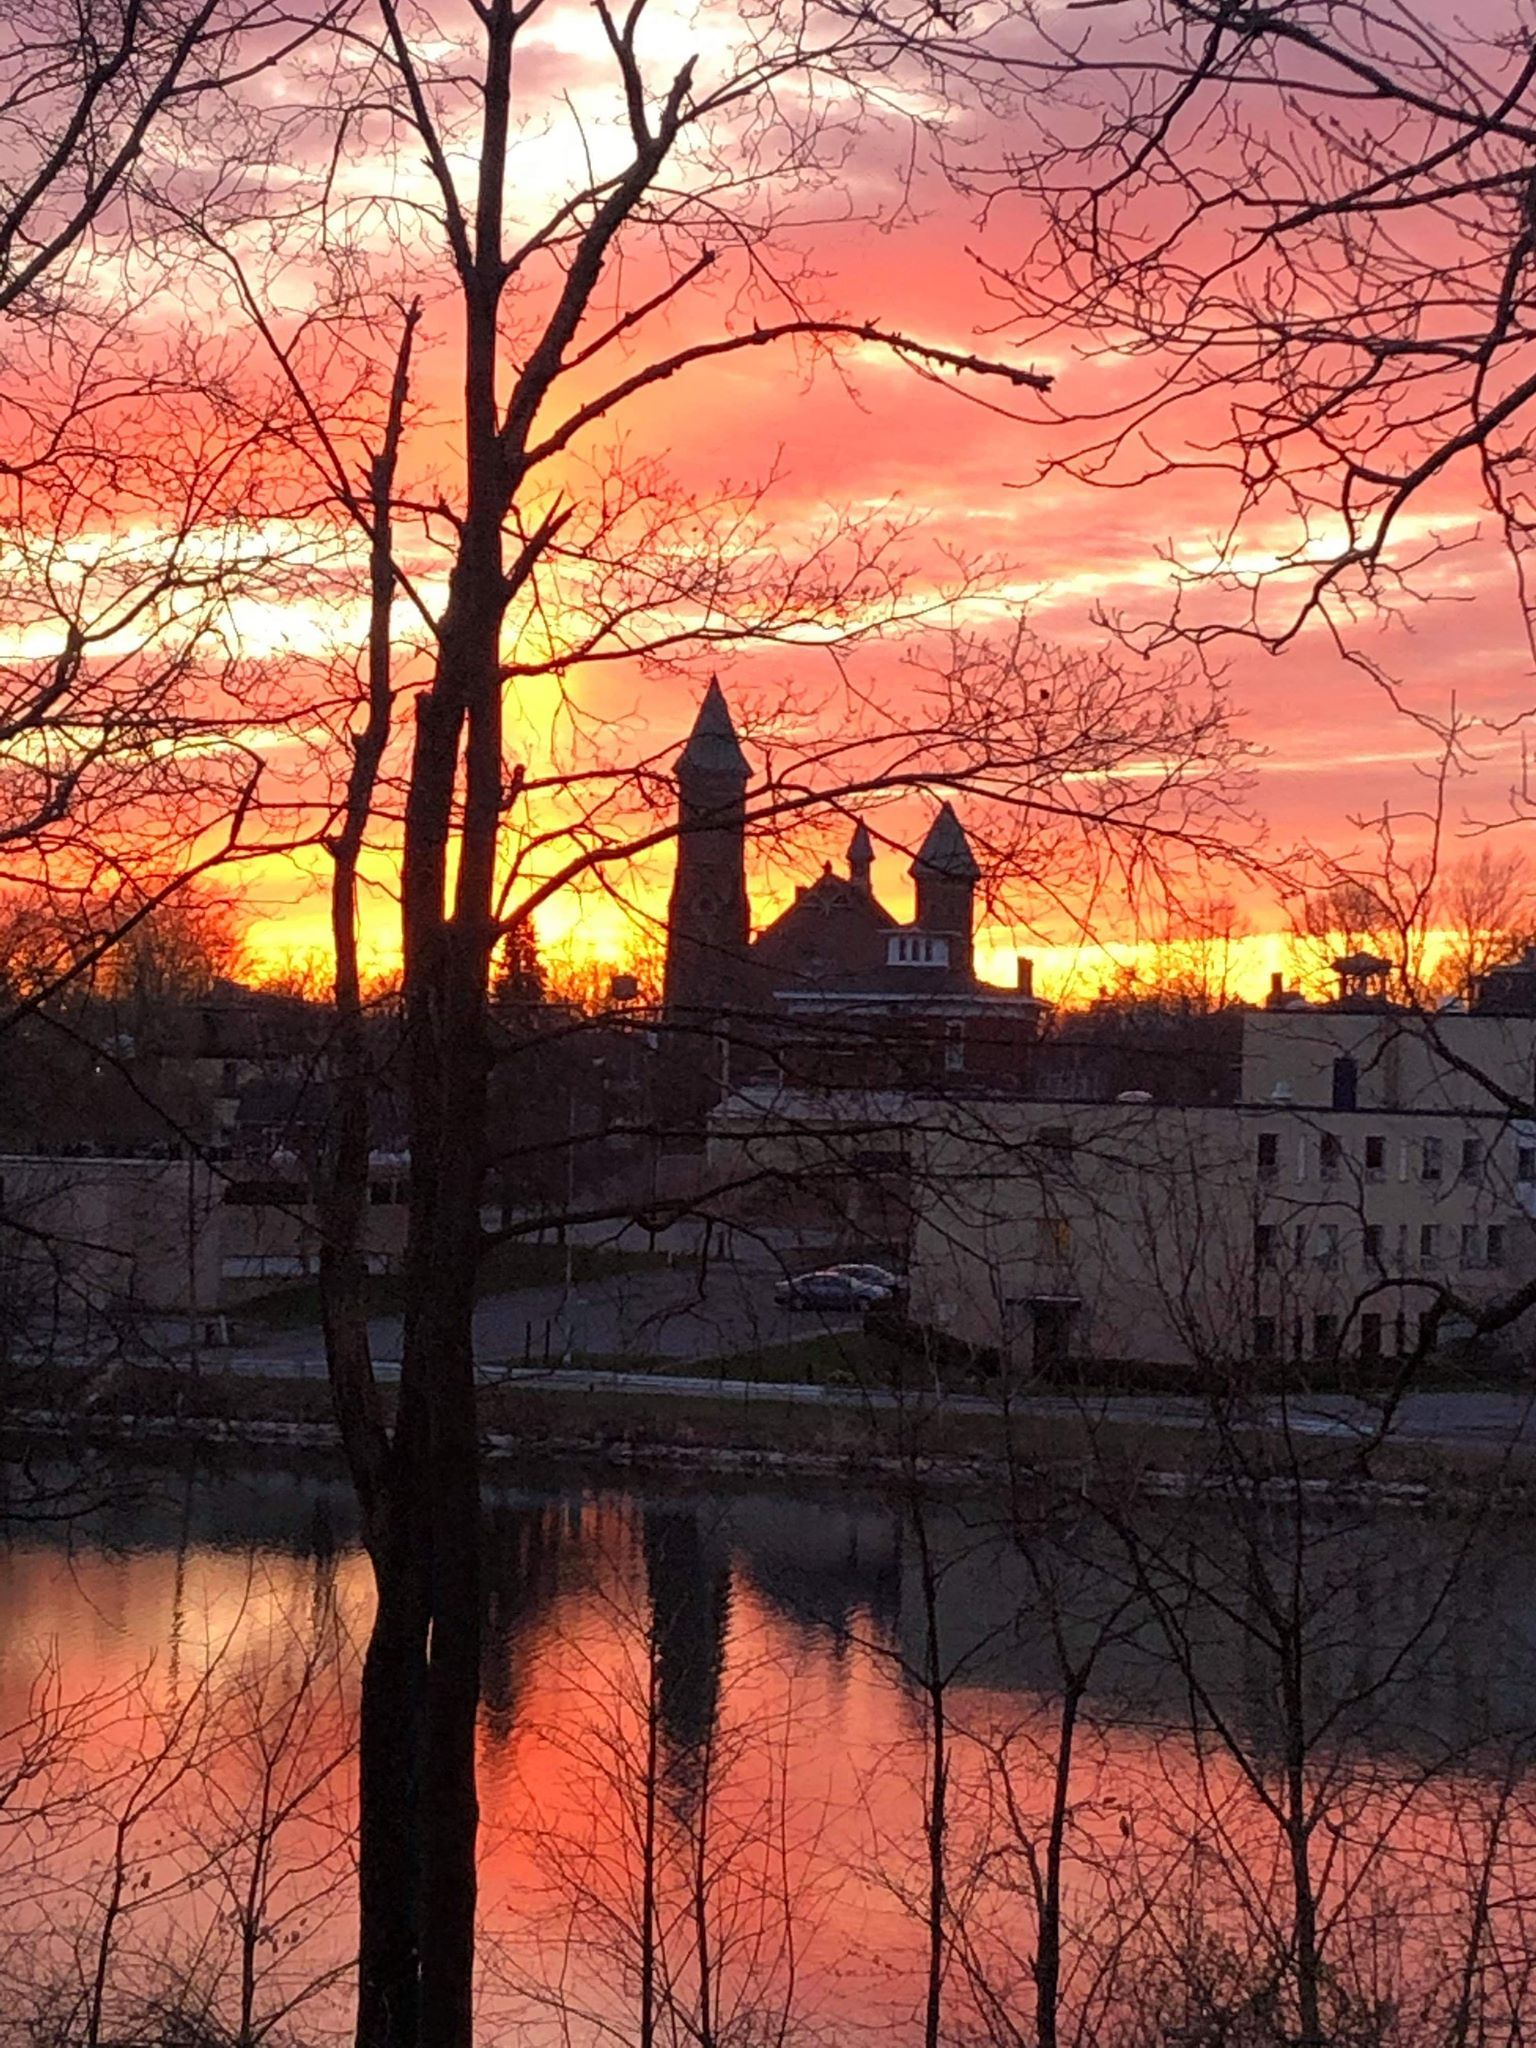 Peaceful sunset over the canal in Seneca Falls (photo)